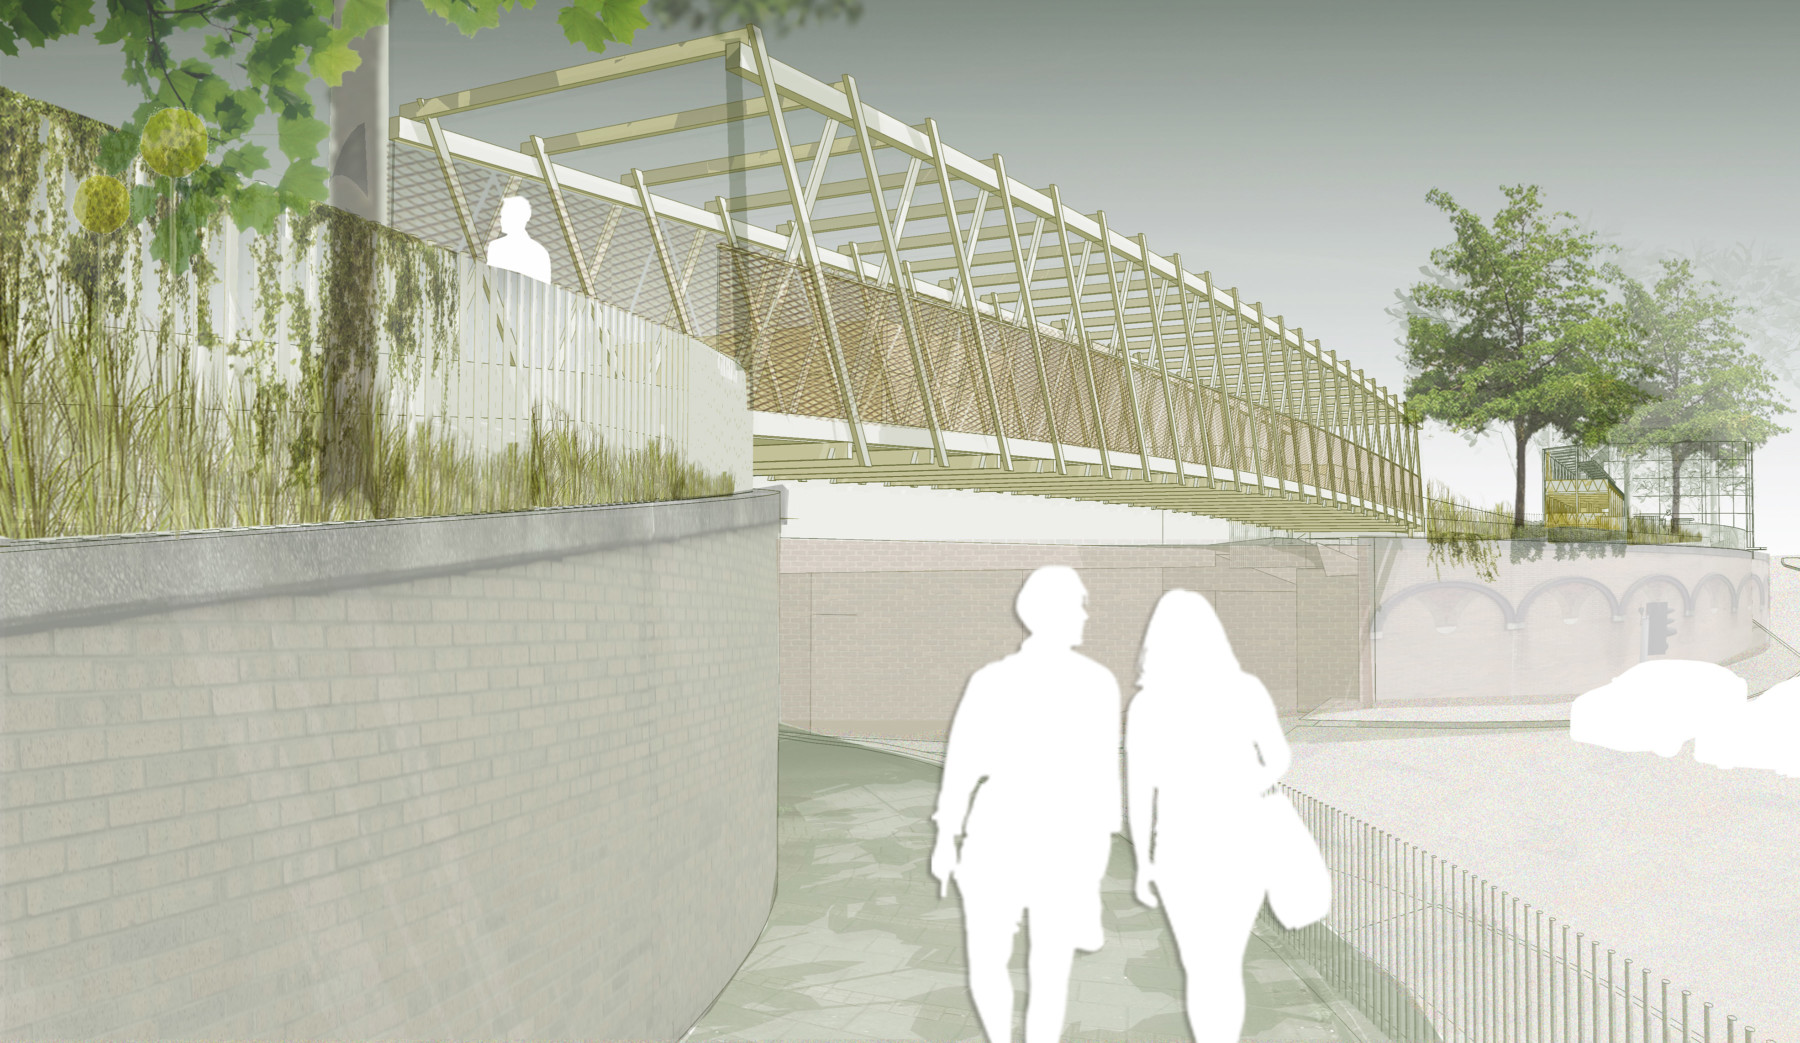 Sarah-Wigglesworth-Architects Kingston-Mini-Holland Bridge 1 Overall 3600